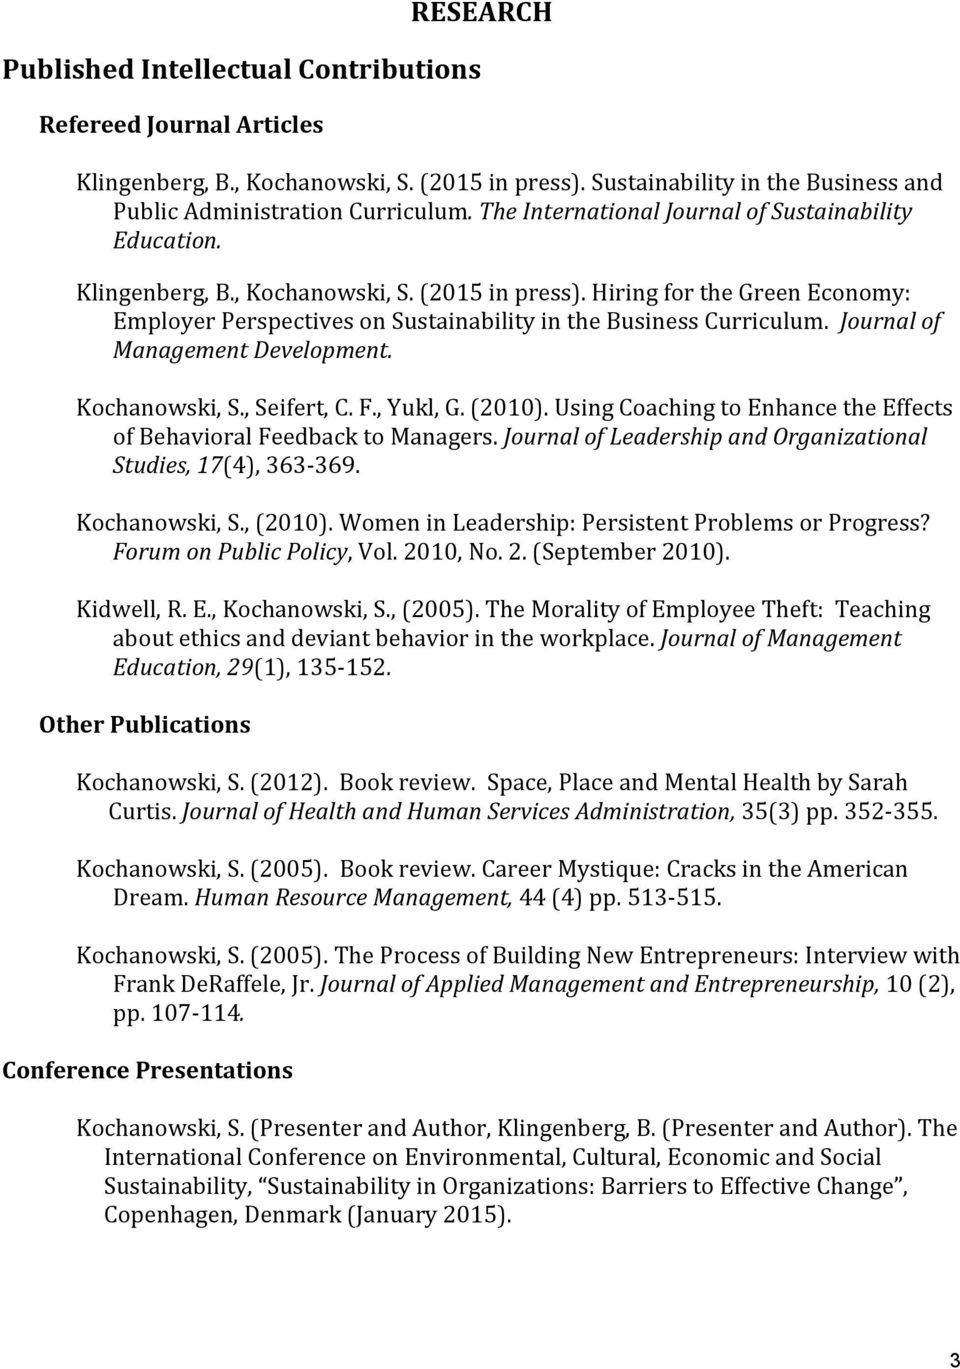 Hiring for the Green Economy: Employer Perspectives on Sustainability in the Business Curriculum. Journal of Management Development. Kochanowski, S., Seifert, C. F., Yukl, G. (2010).